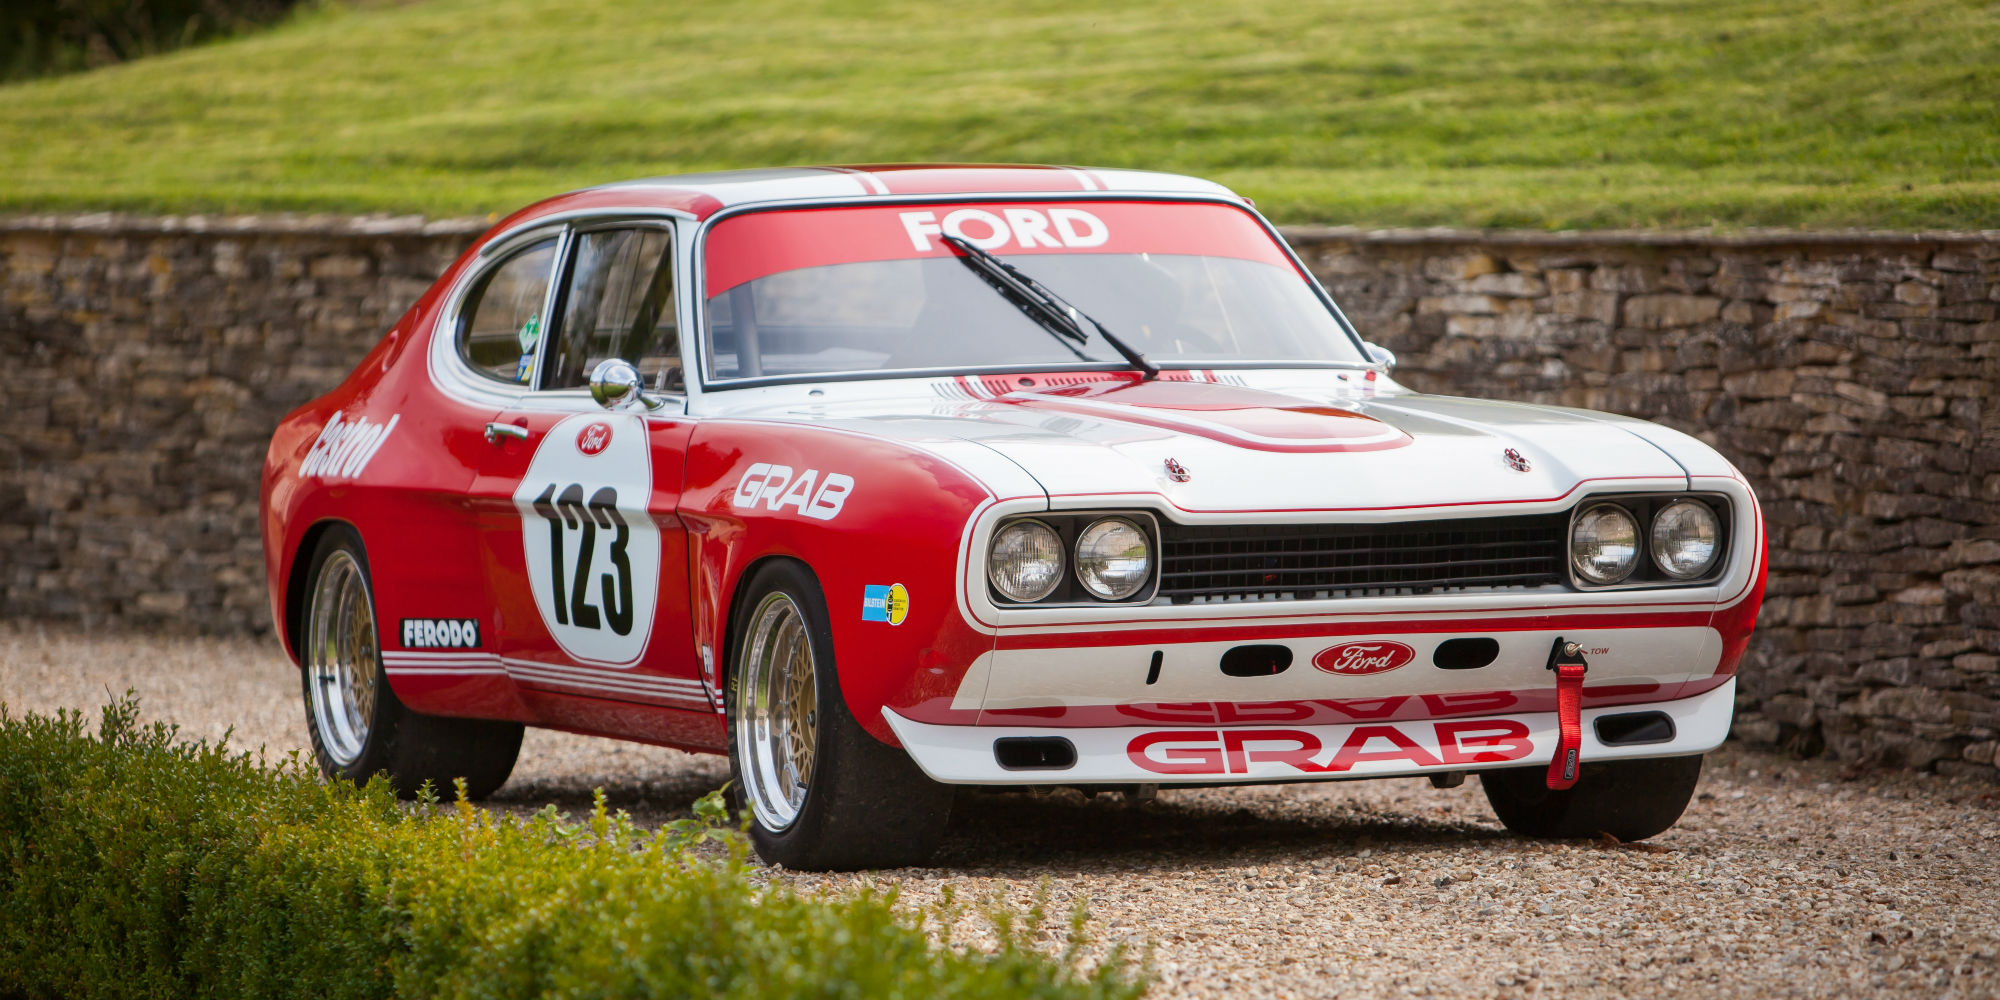 Ford Capri to FIA RS2600 Group 2 Specification